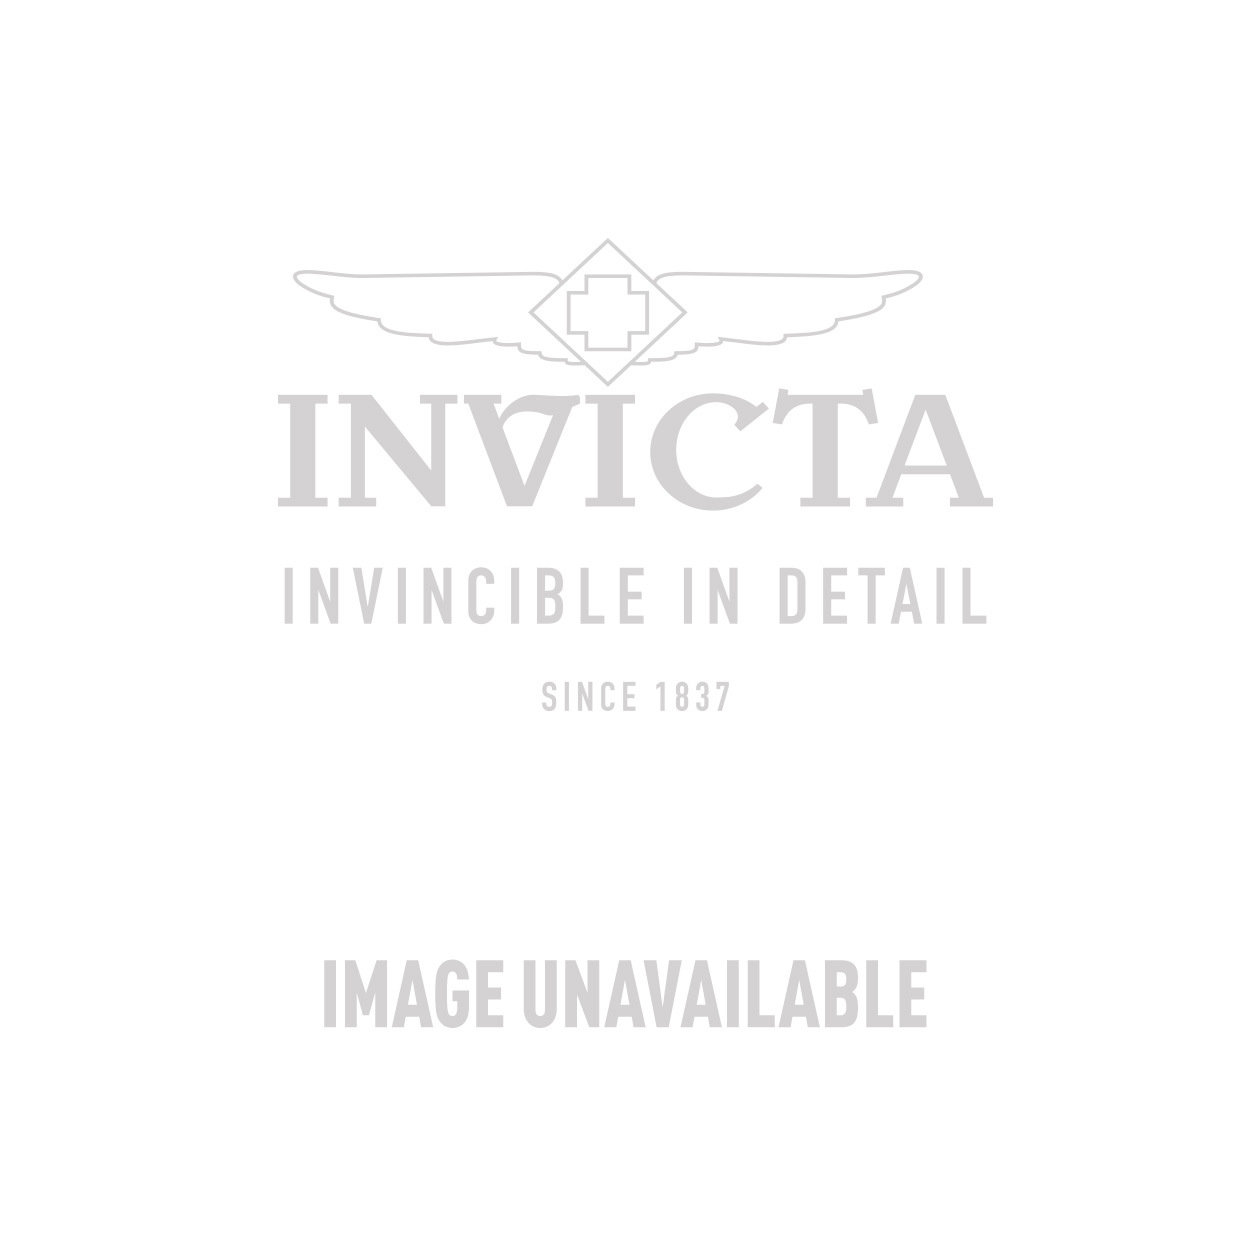 Invicta Specialty Swiss Movement Quartz Watch - Stainless Steel case Stainless Steel band - Model 0369